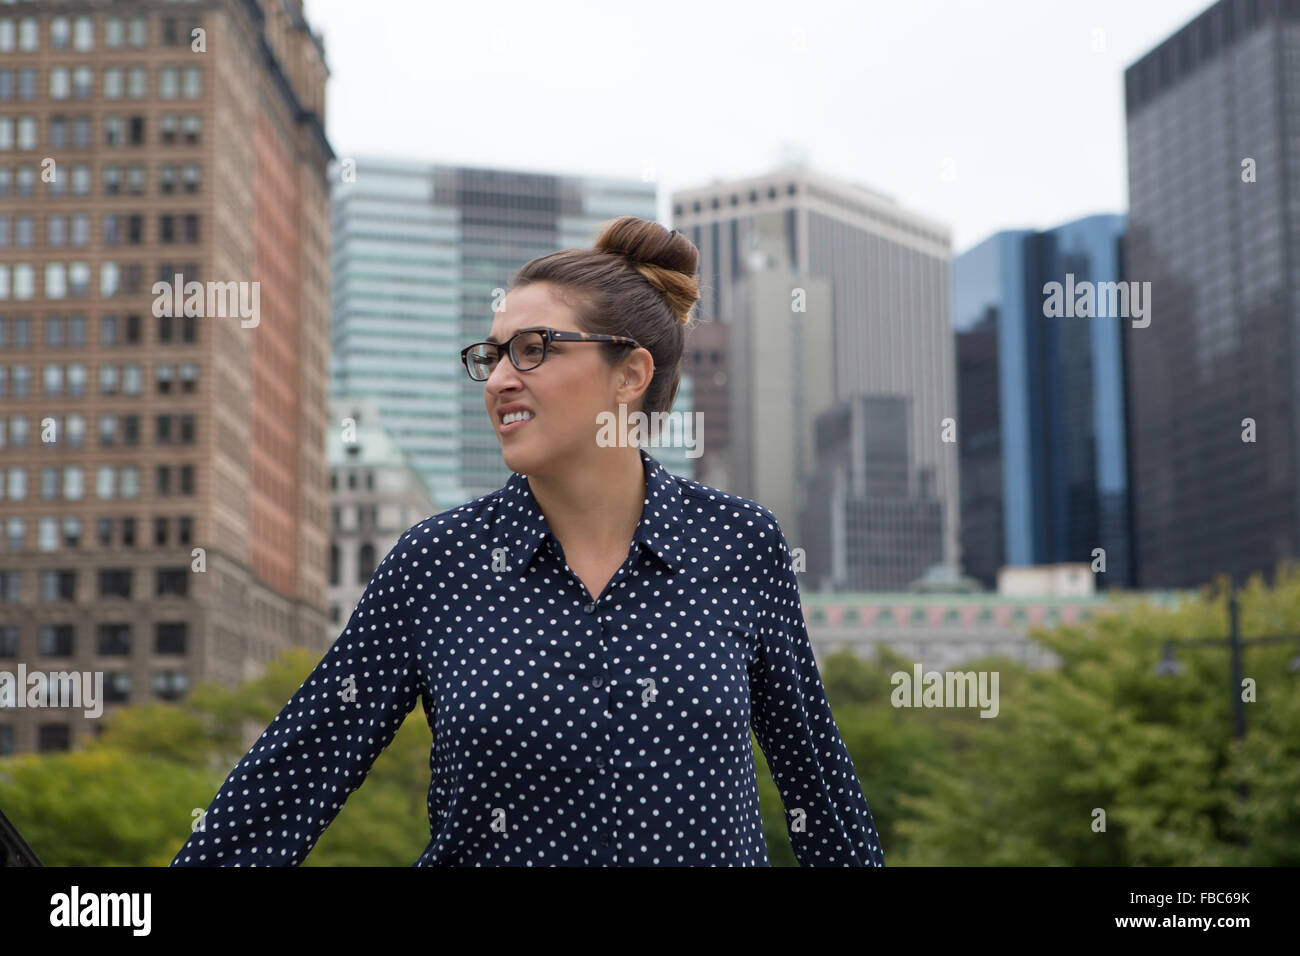 A young professional business woman walking in the city. Photographed in New York City, in October 2015. - Stock Image